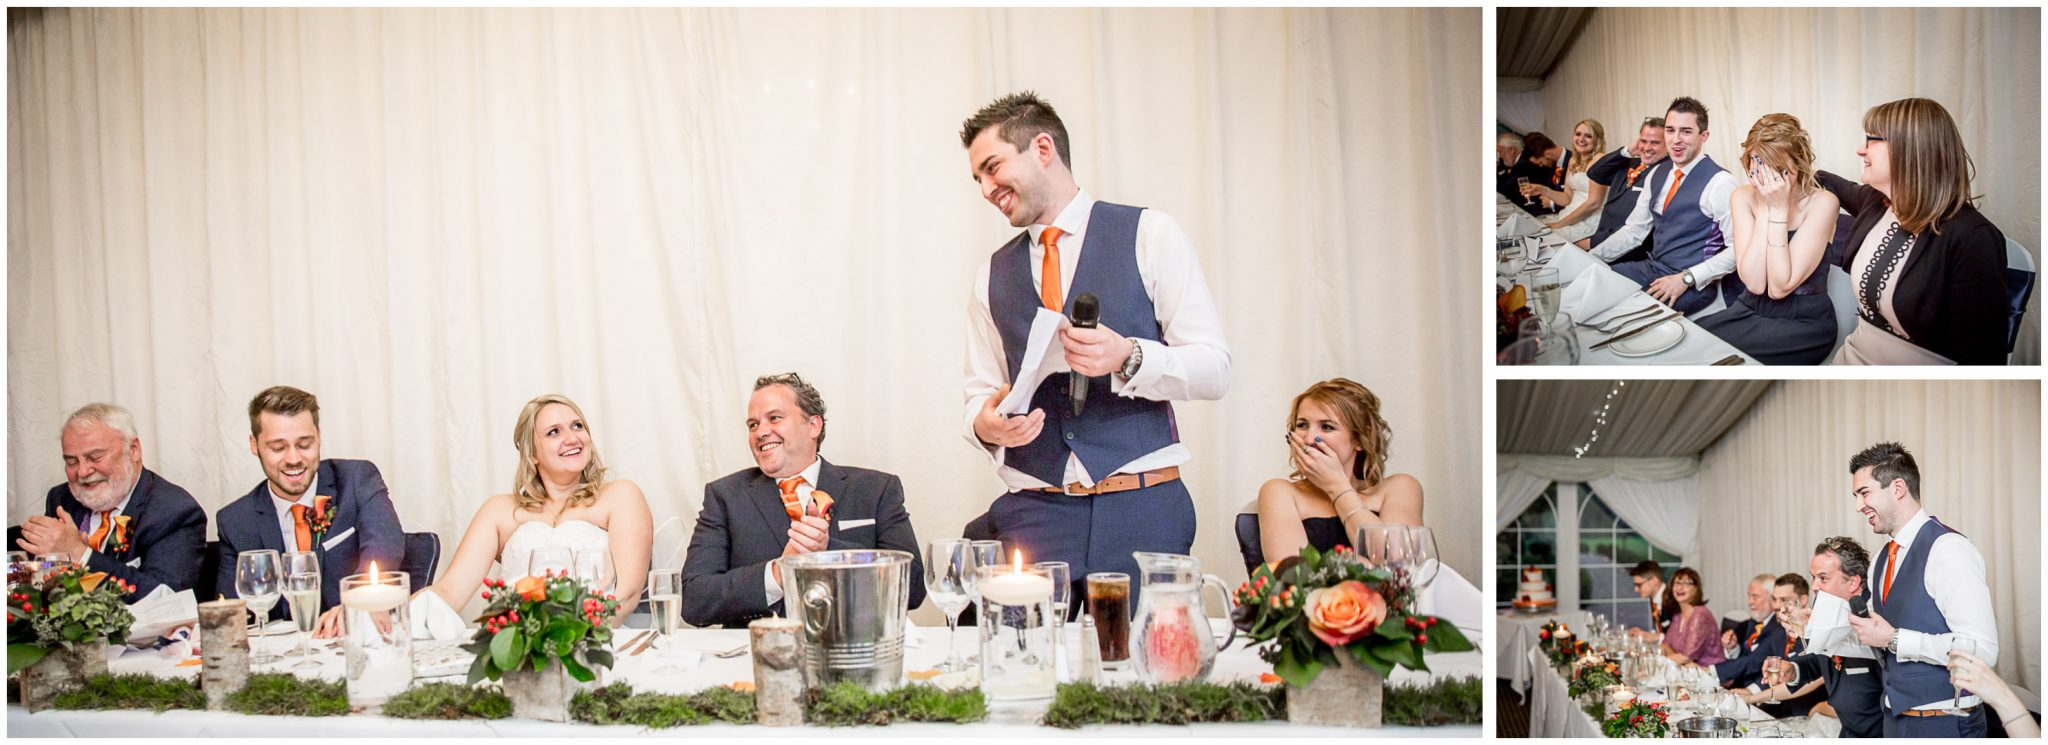 Audleys Wood wedding photograhy laughter during best man's speech